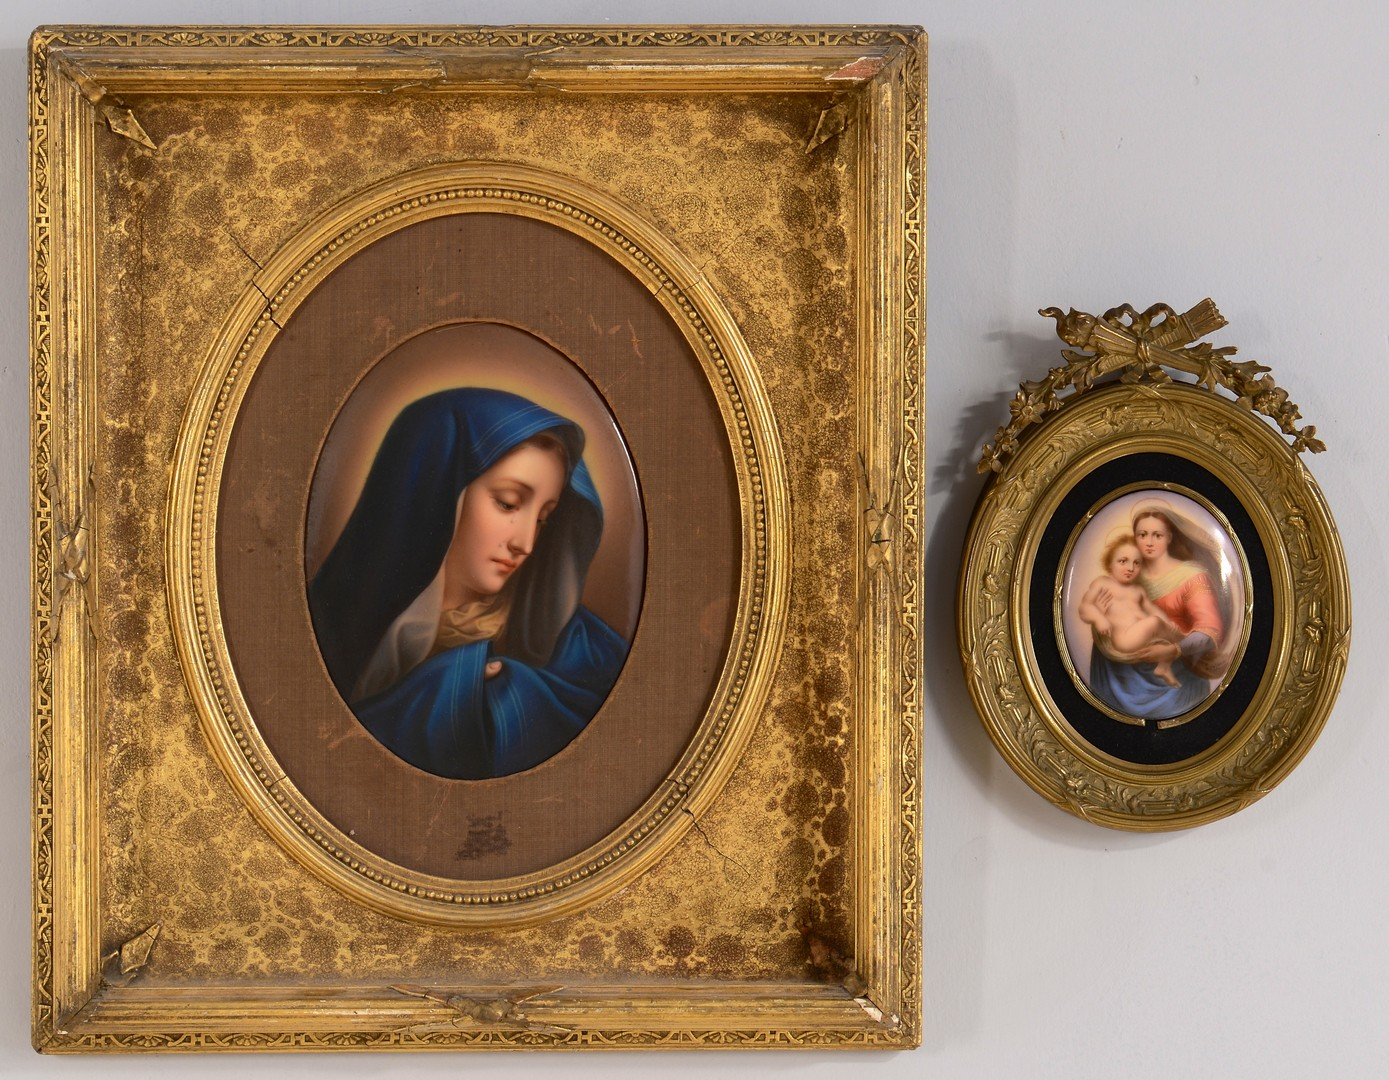 Lot 3832436: 2 Framed Porcelain Madonna Plaques